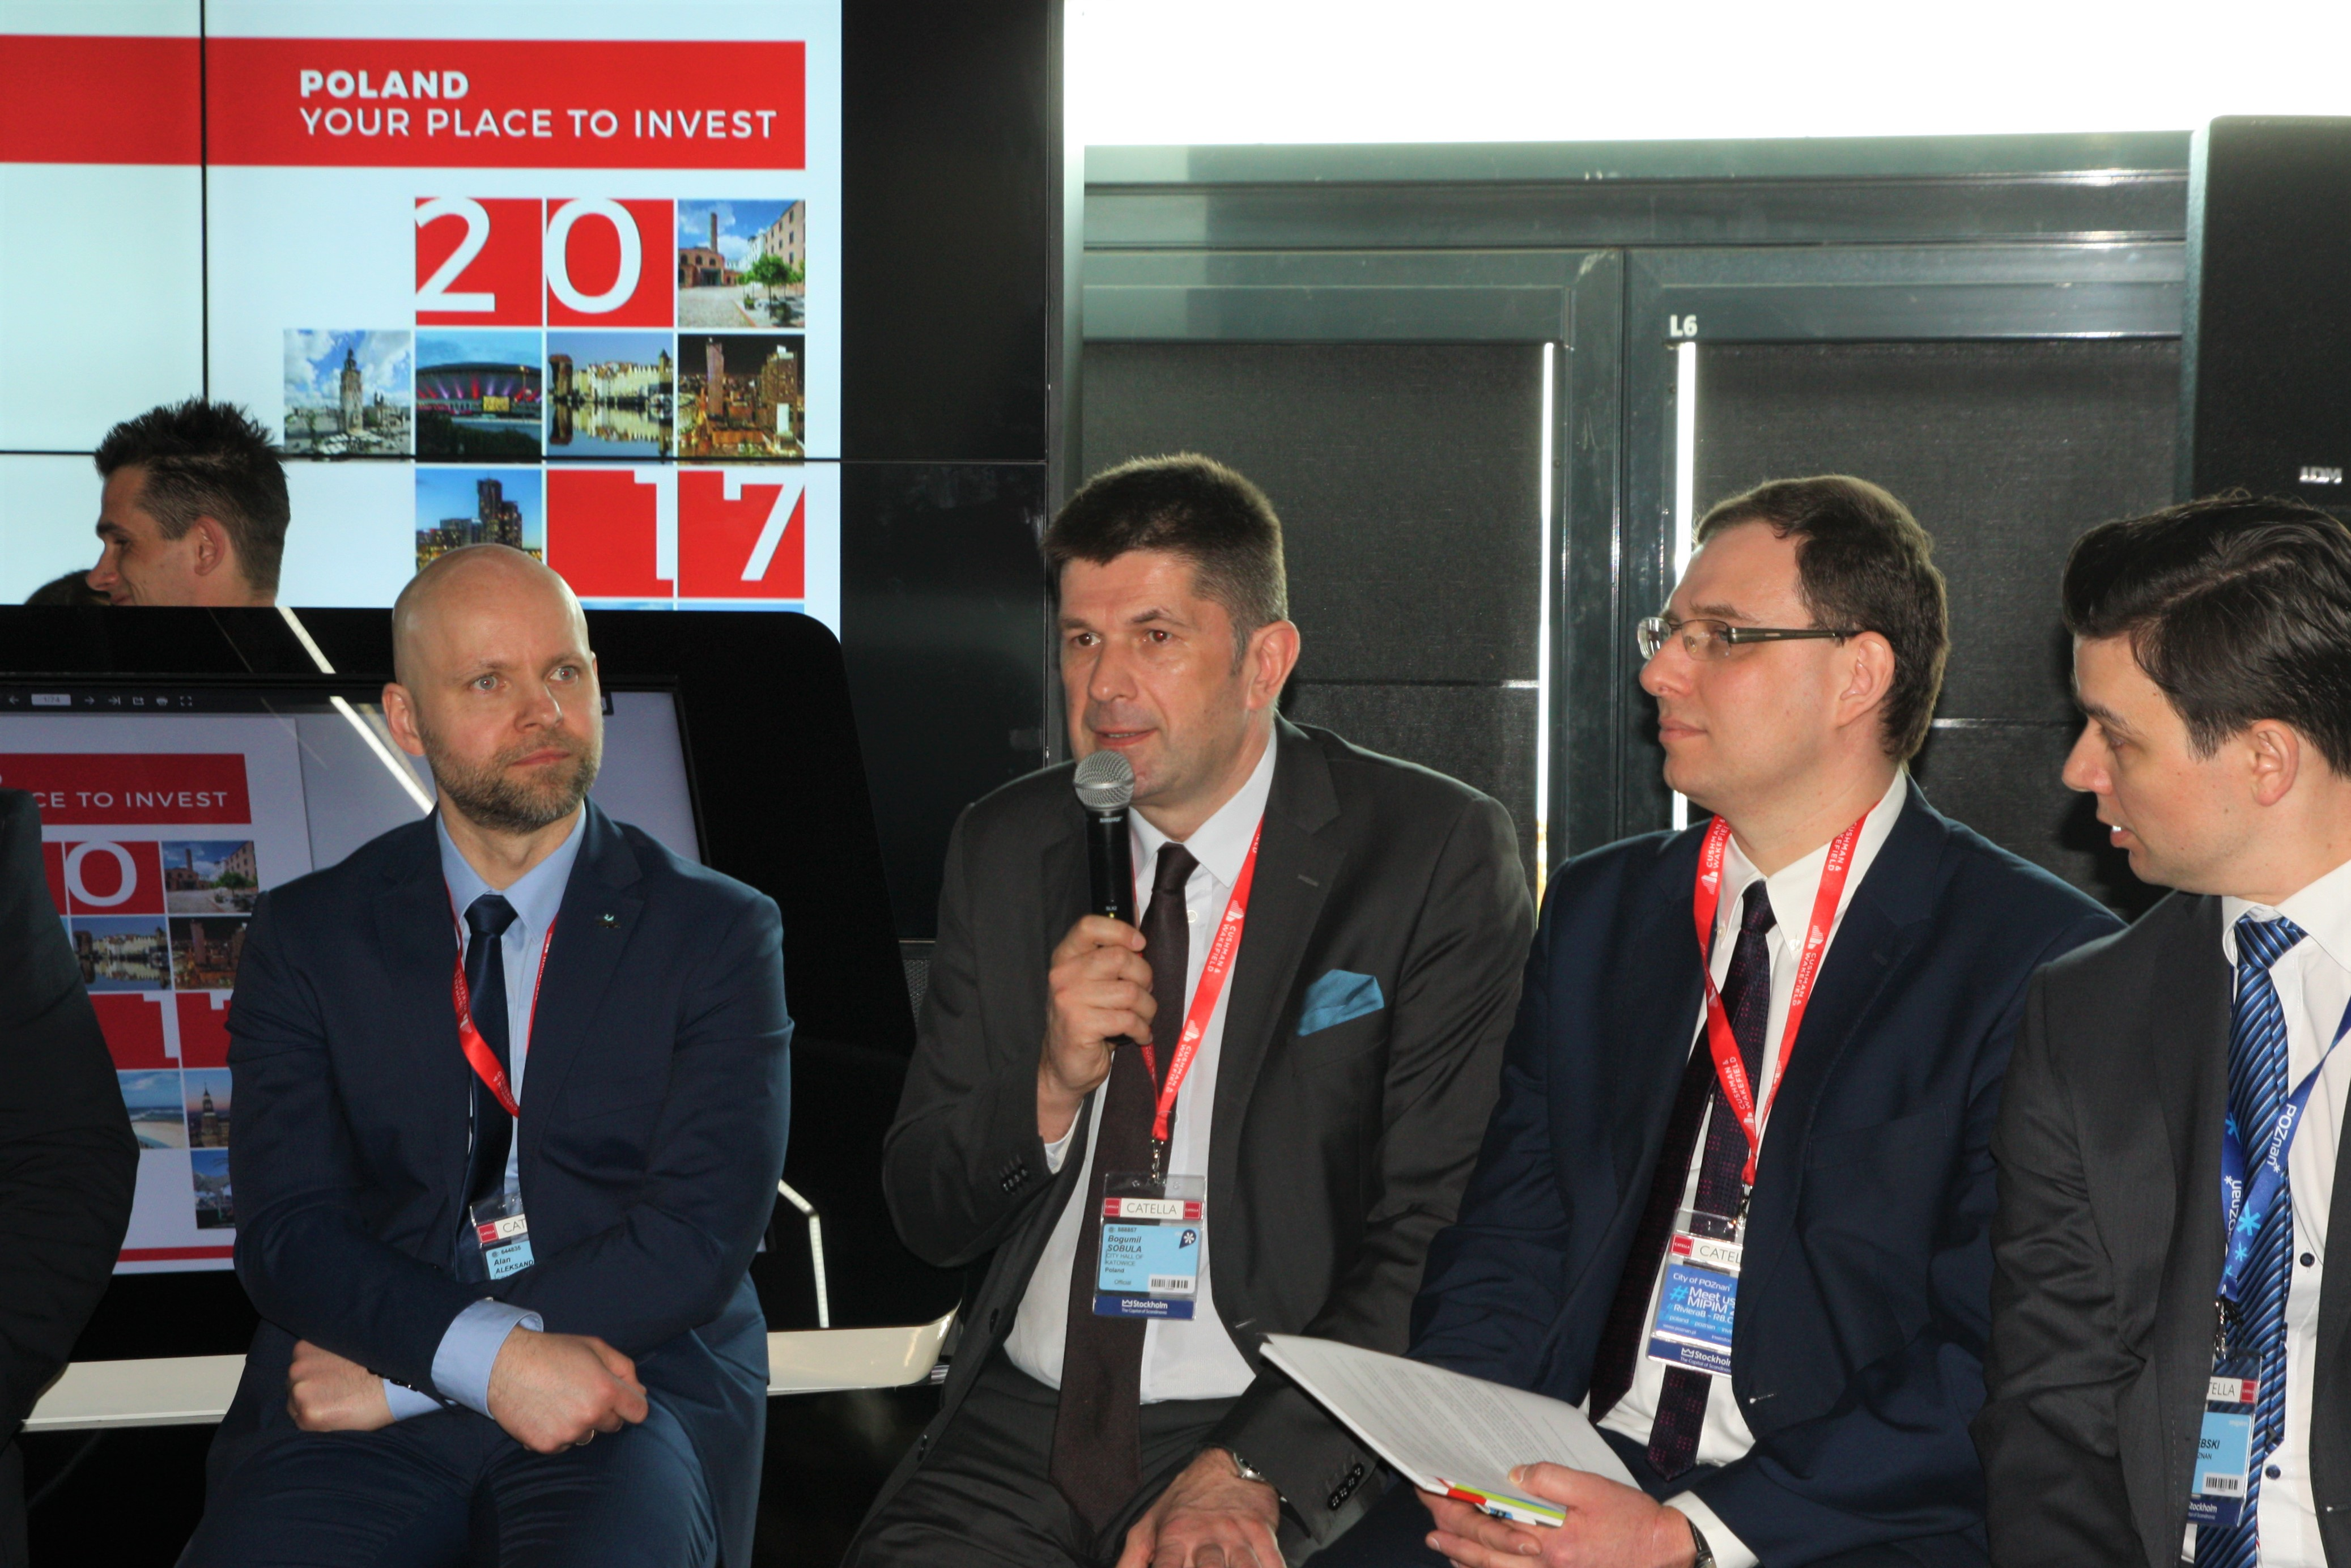 Katowice@mipim2017- (Poland Your Place to Invest).jpg